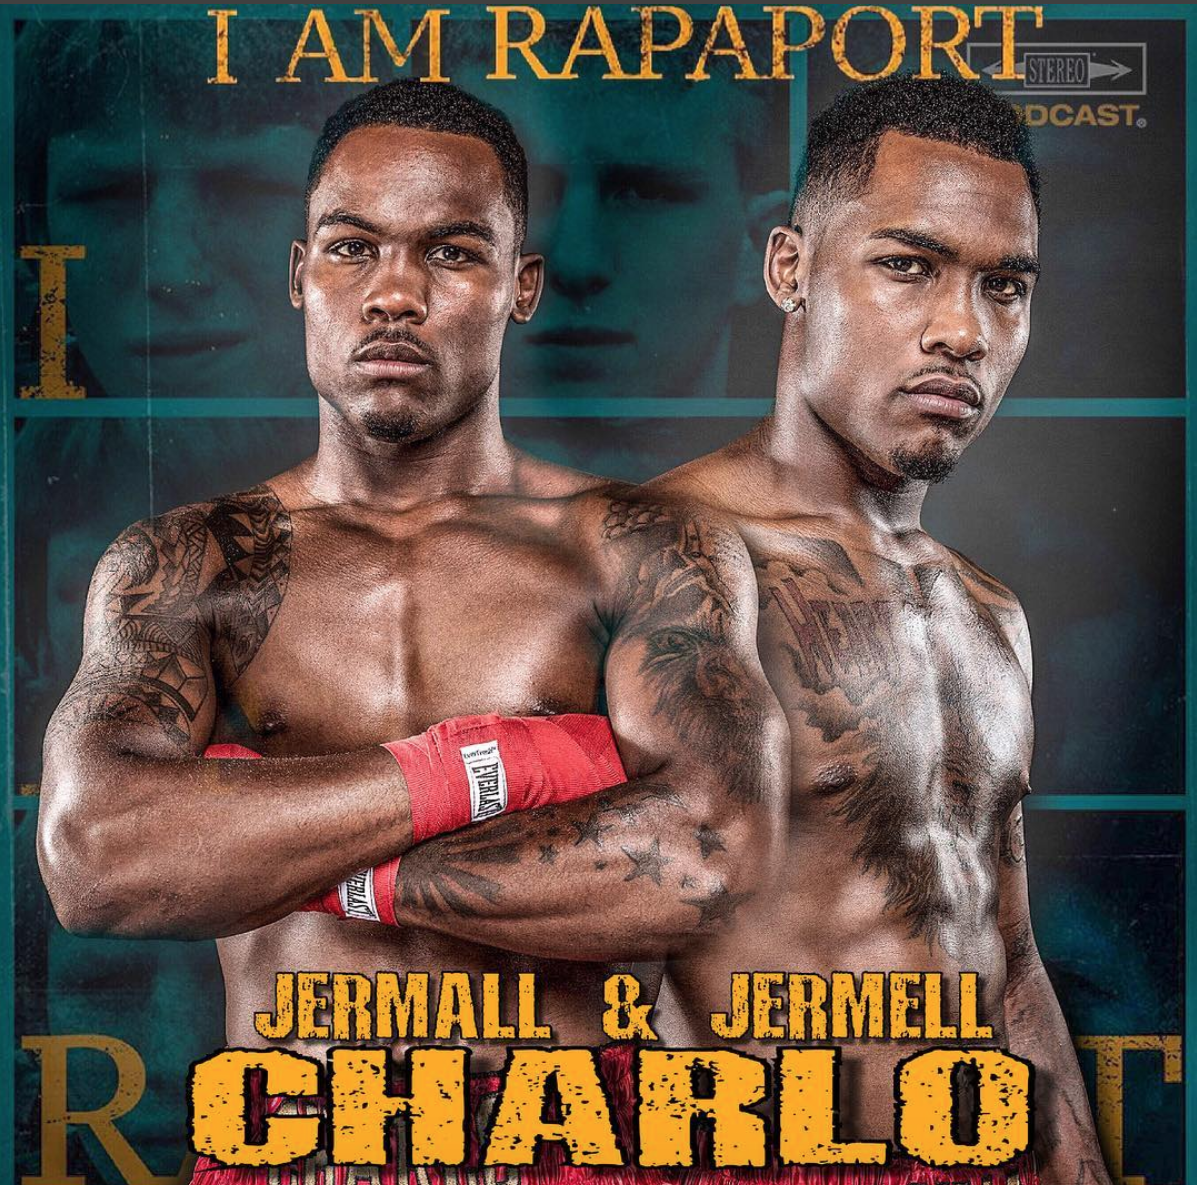 Michael rapaport speaks with the Charlo twins on his stereo podcast